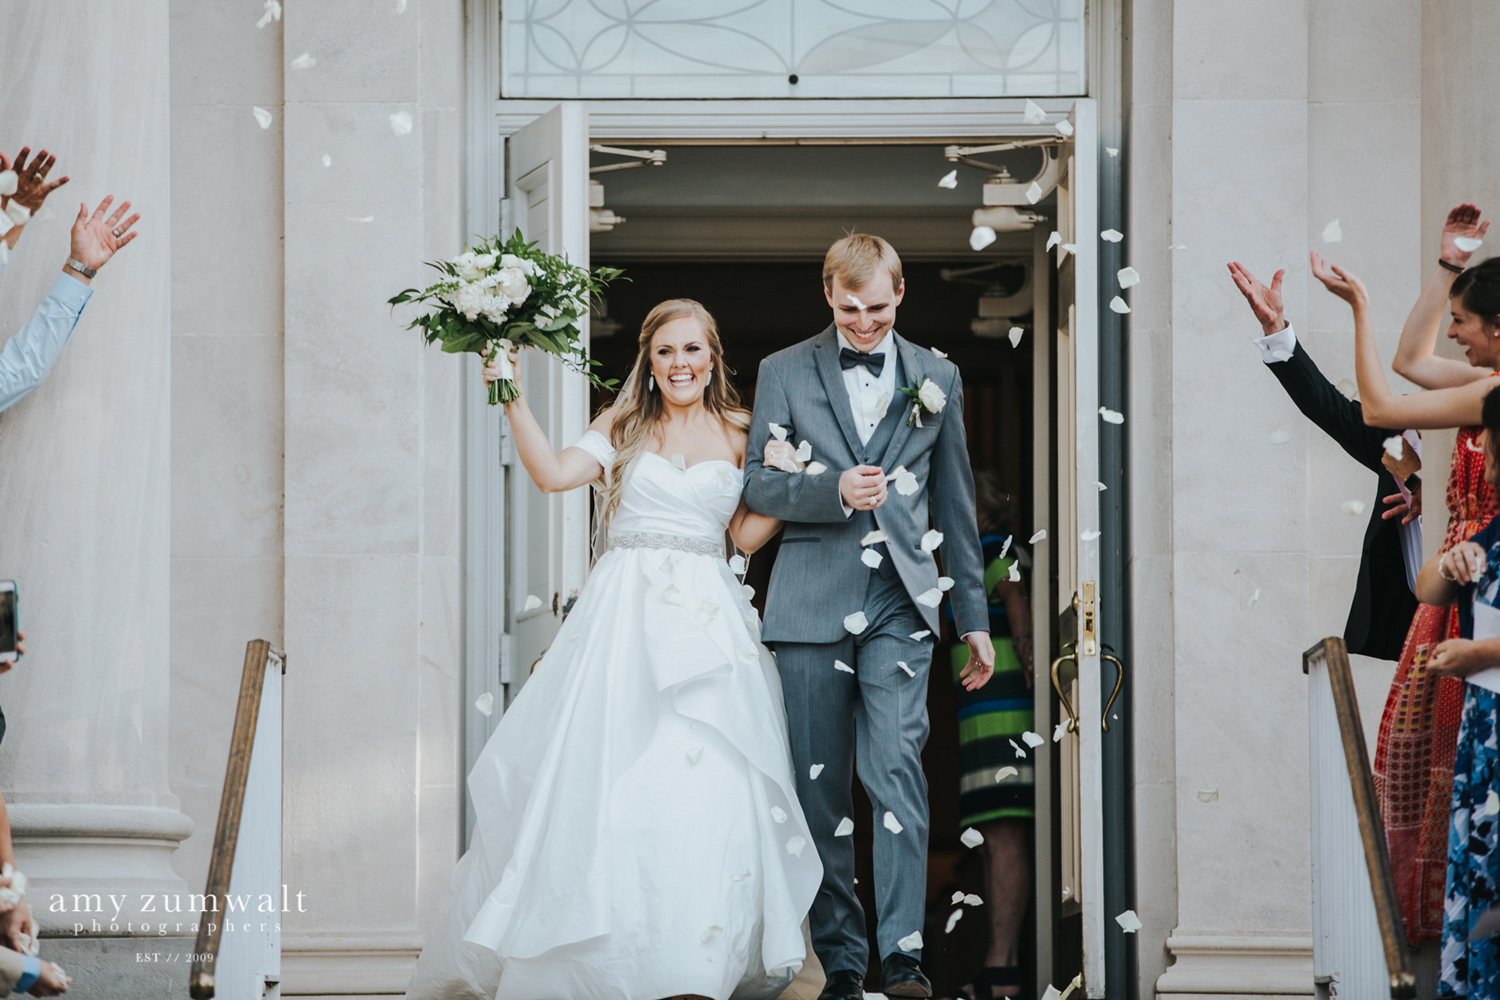 Bride and groom pedal exit at church